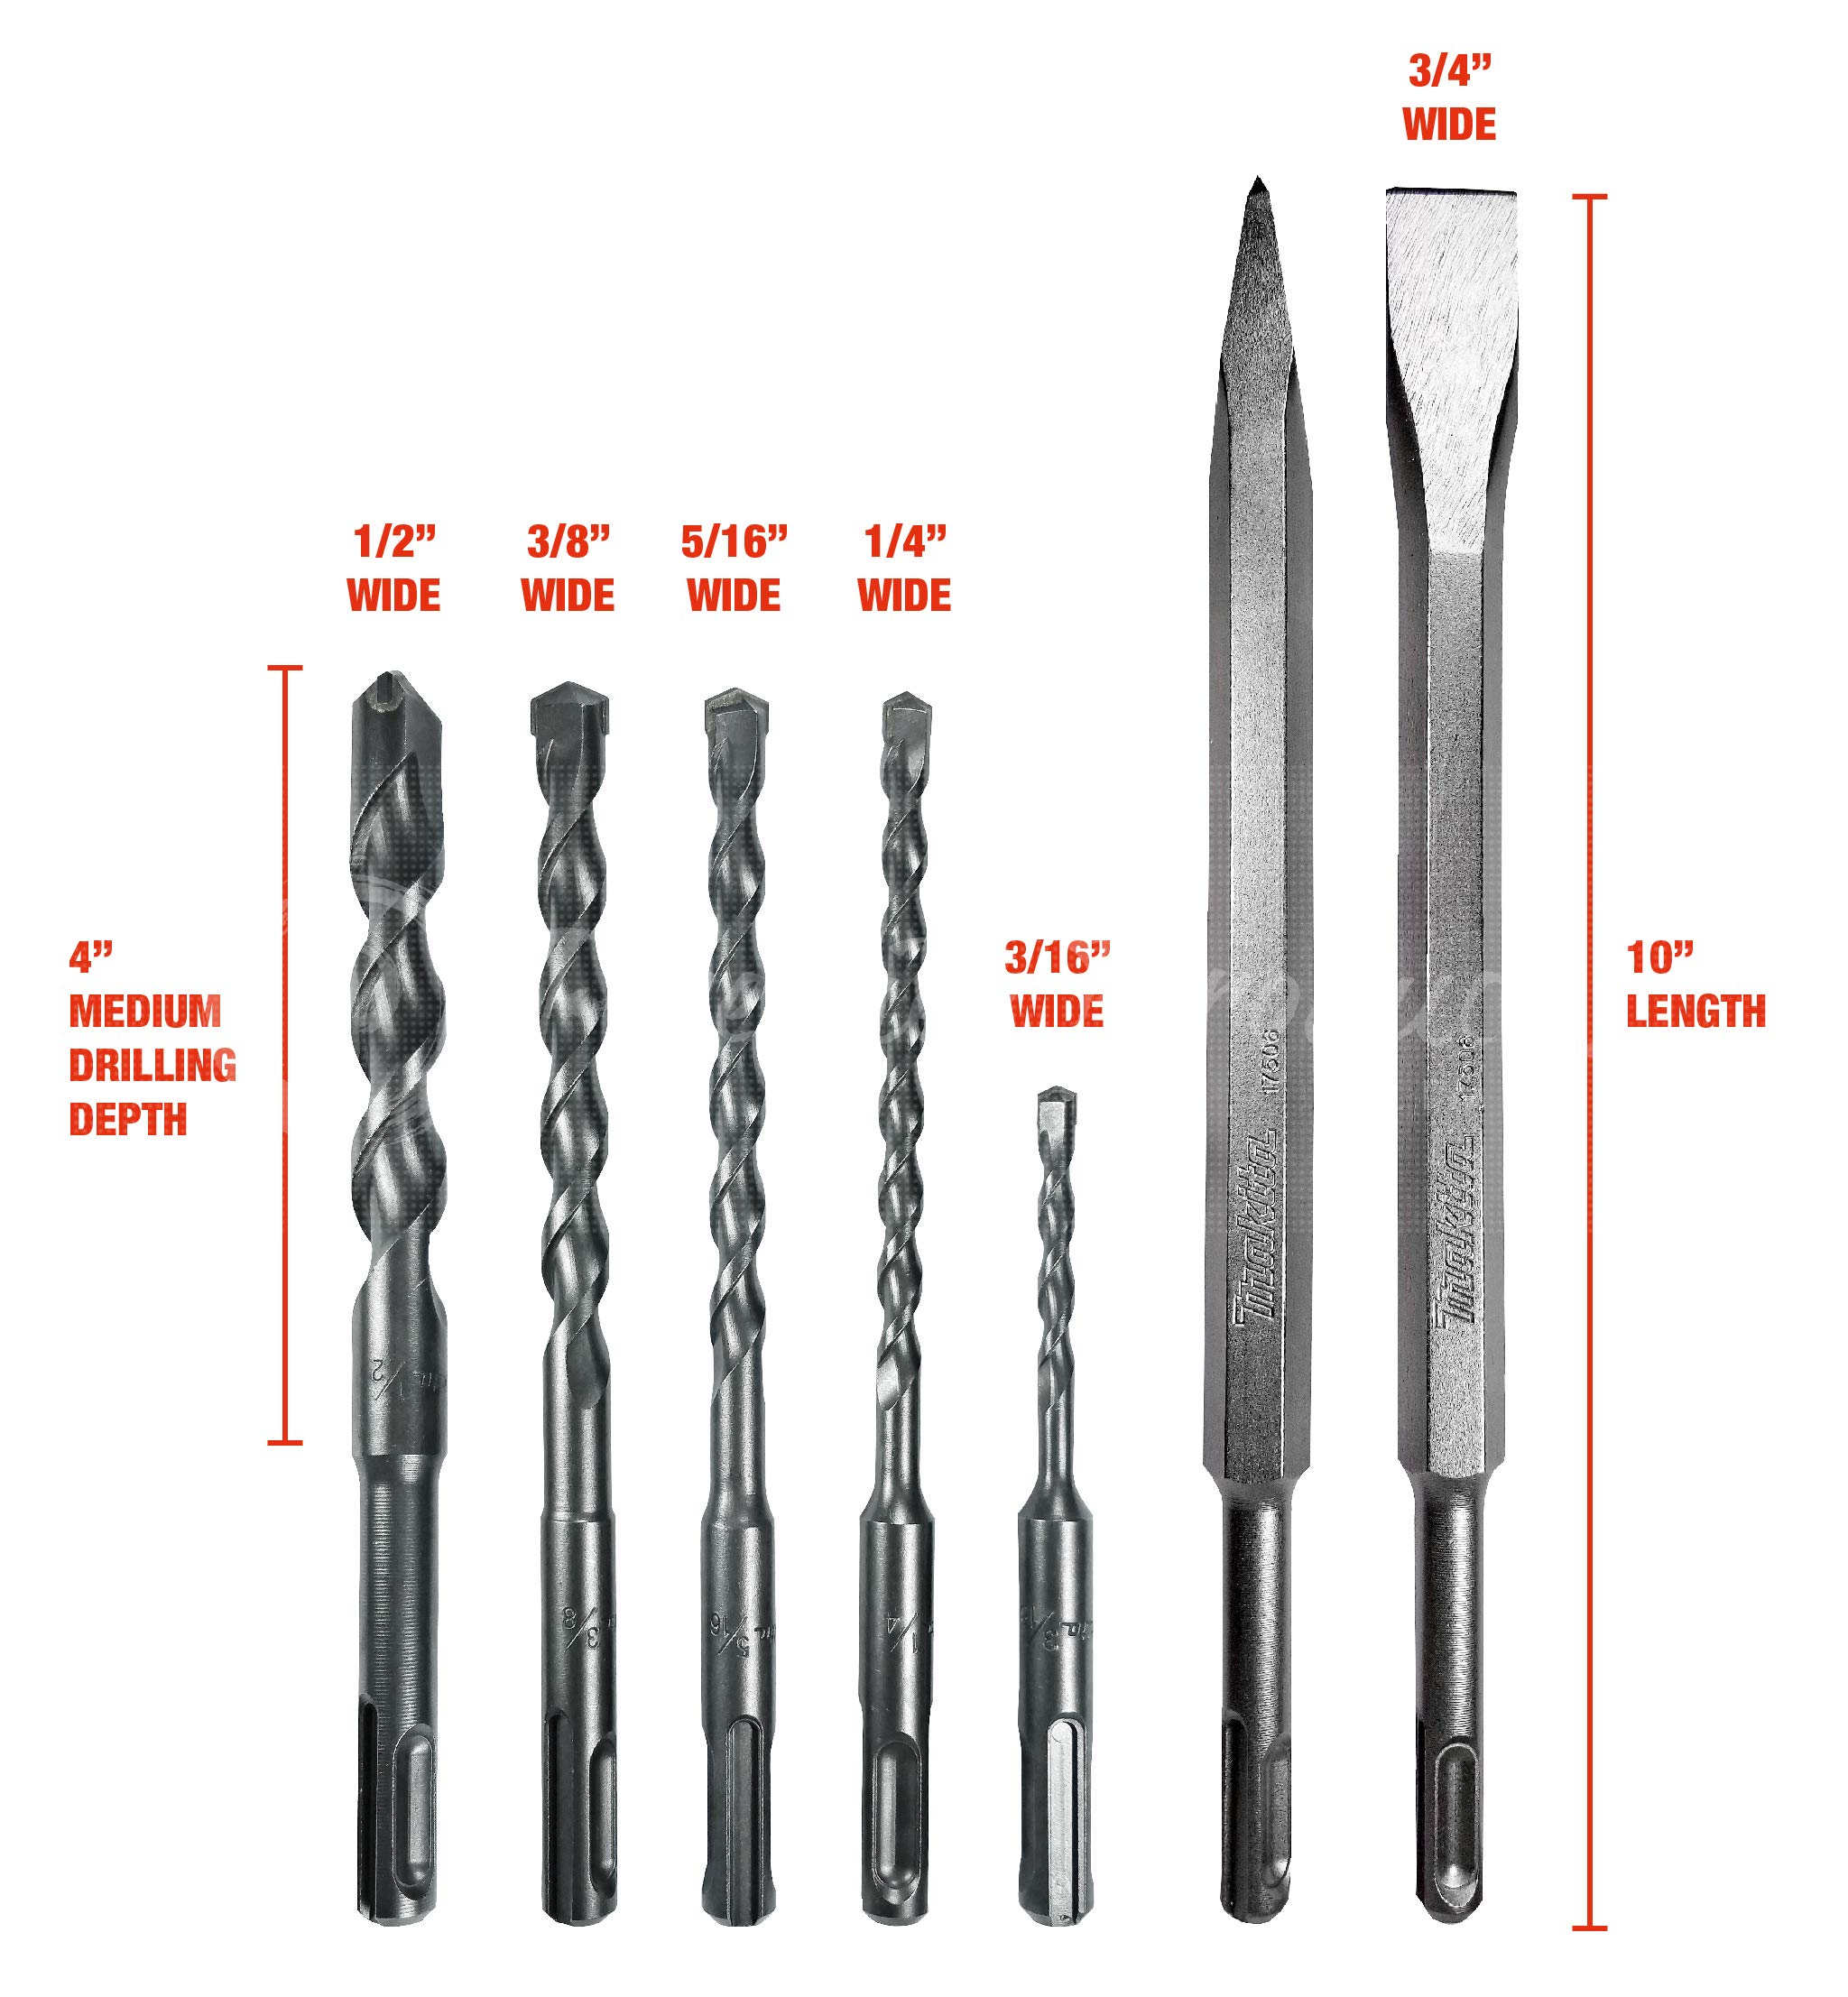 Makita 7 Piece - SDS-Plus Drill, Chisel & Bull Point Bit Set For SDS+ Rotary Hammers - Aggressive Demolition For Concrete & Masonry by Makita (Image #3)